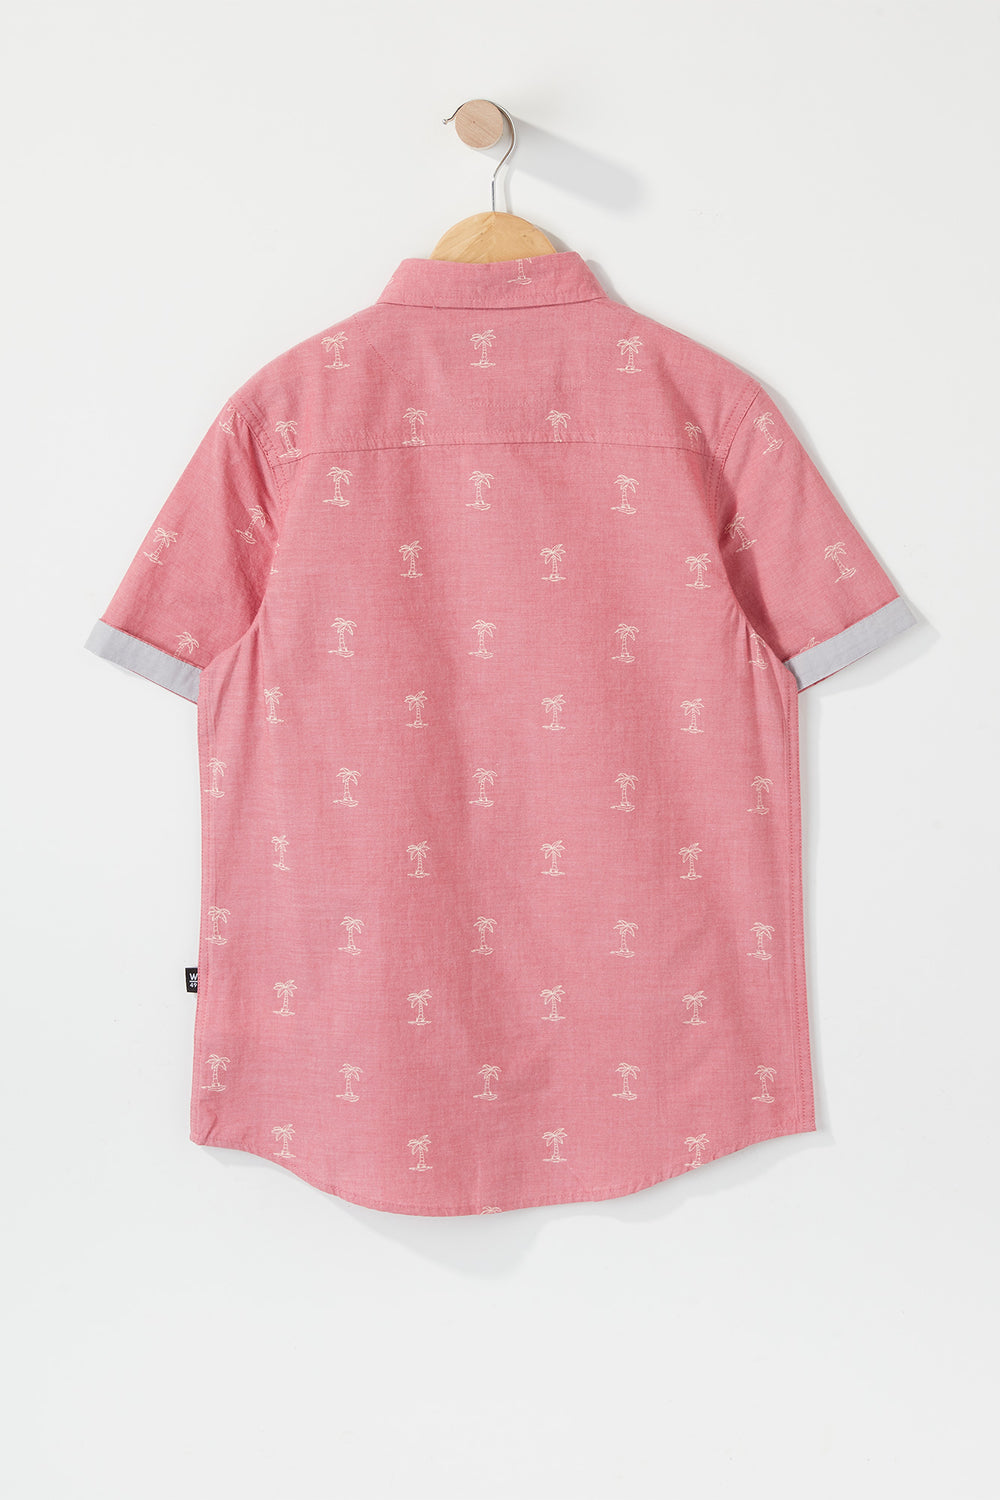 West49 Boys Ditsy Print Button-Up Dusty Rose